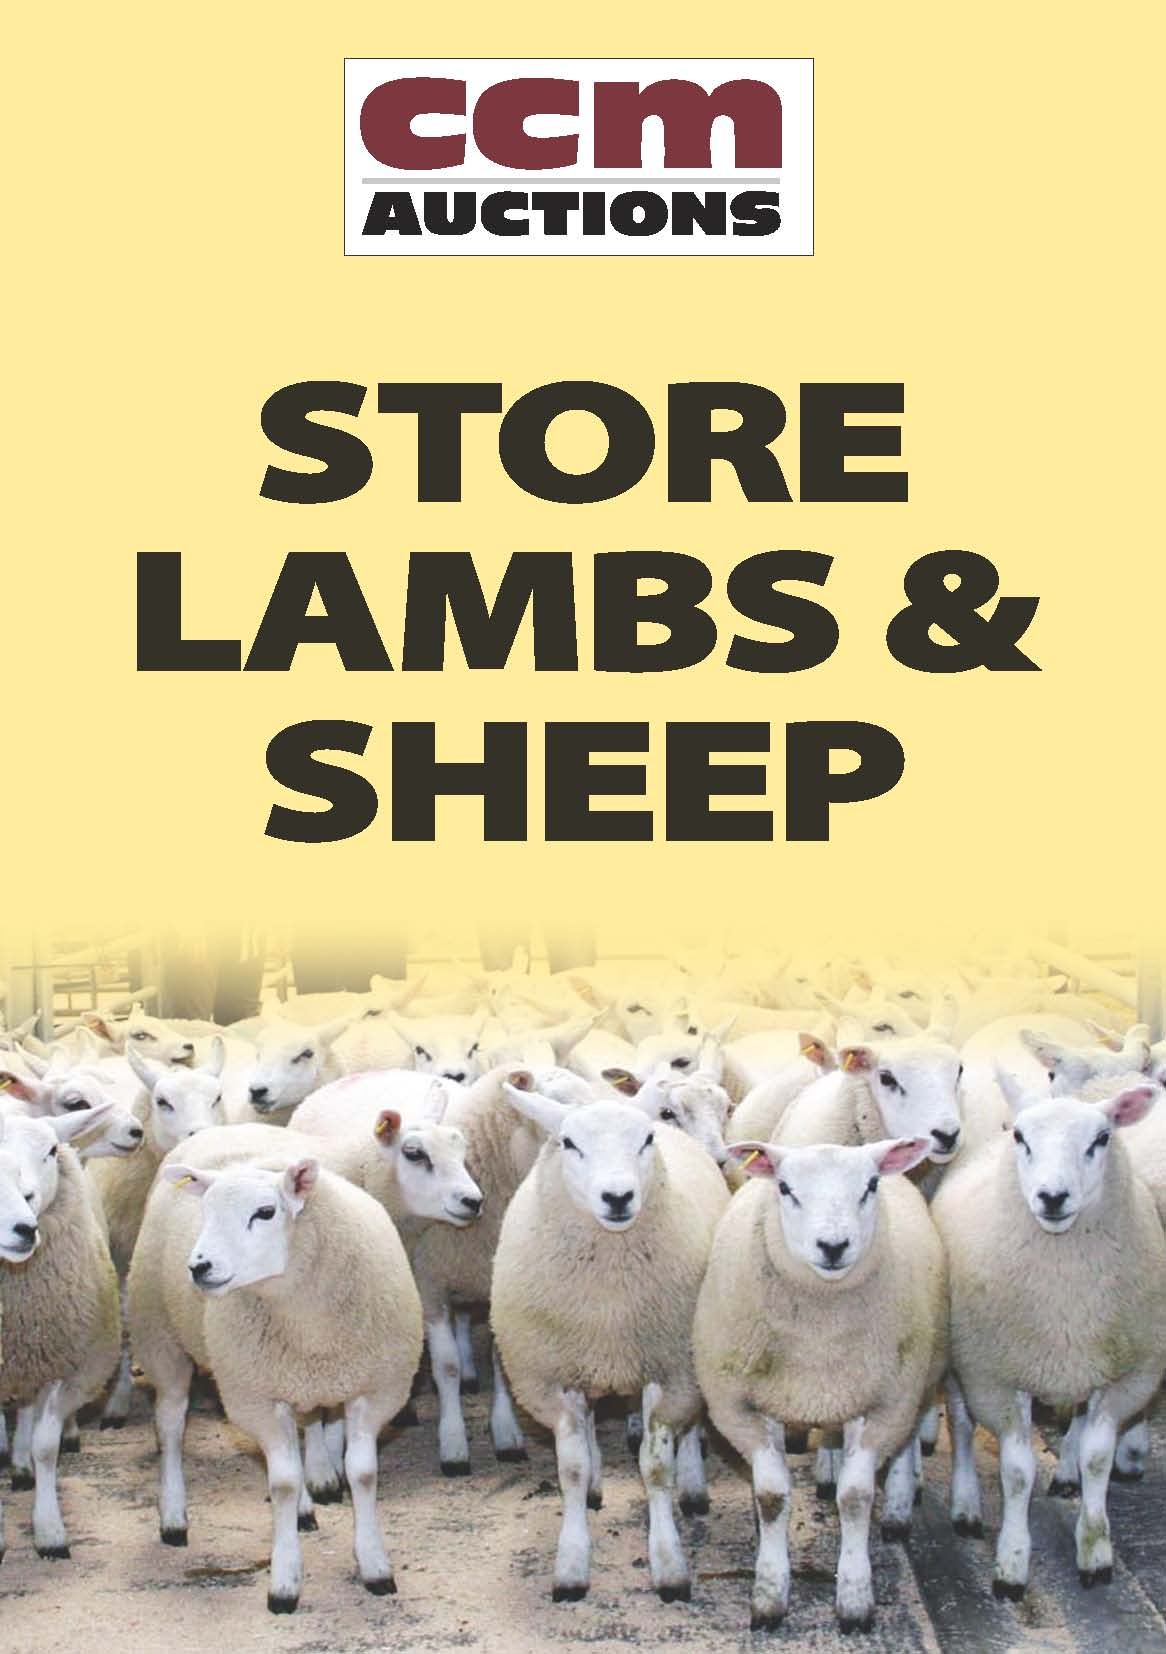 STORE LAMBS - WEDNESDAY 26TH AUGUST 2015